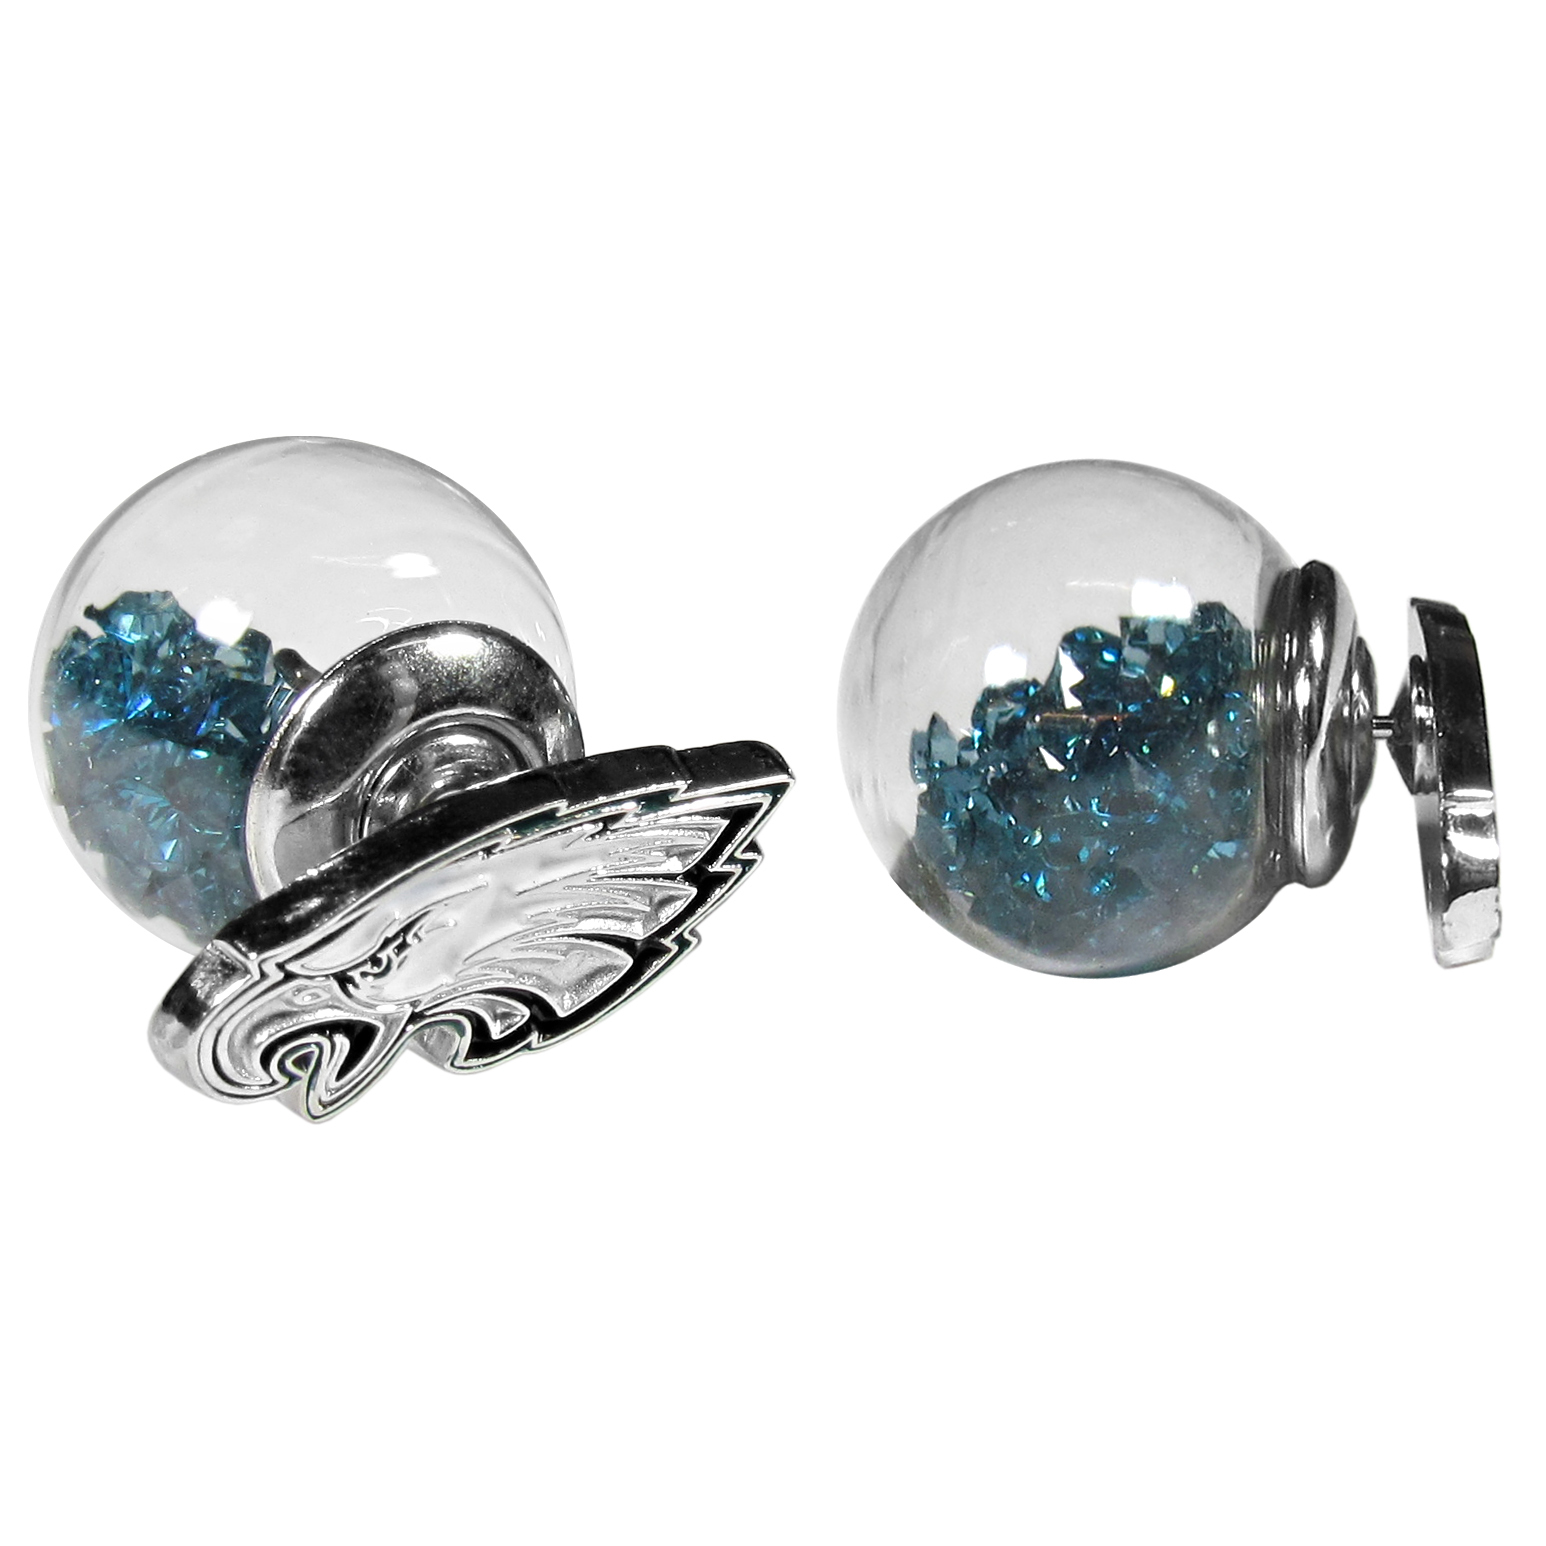 Philadelphia Eagles Front/Back Earrings - Get in on one of the most popular trends in jewelry, front and back earrings! This must-have style is all of over the red carpets and we taken this contemporary look and paired it with your love of the Philadelphia Eagles! The front of the earring is a sporty team logo and the back of these eye-catching earrings is a glass ball filled with colored crystal beads. This piece is perfect for a fashion-forward fan, with bold taste and trend-setting style.